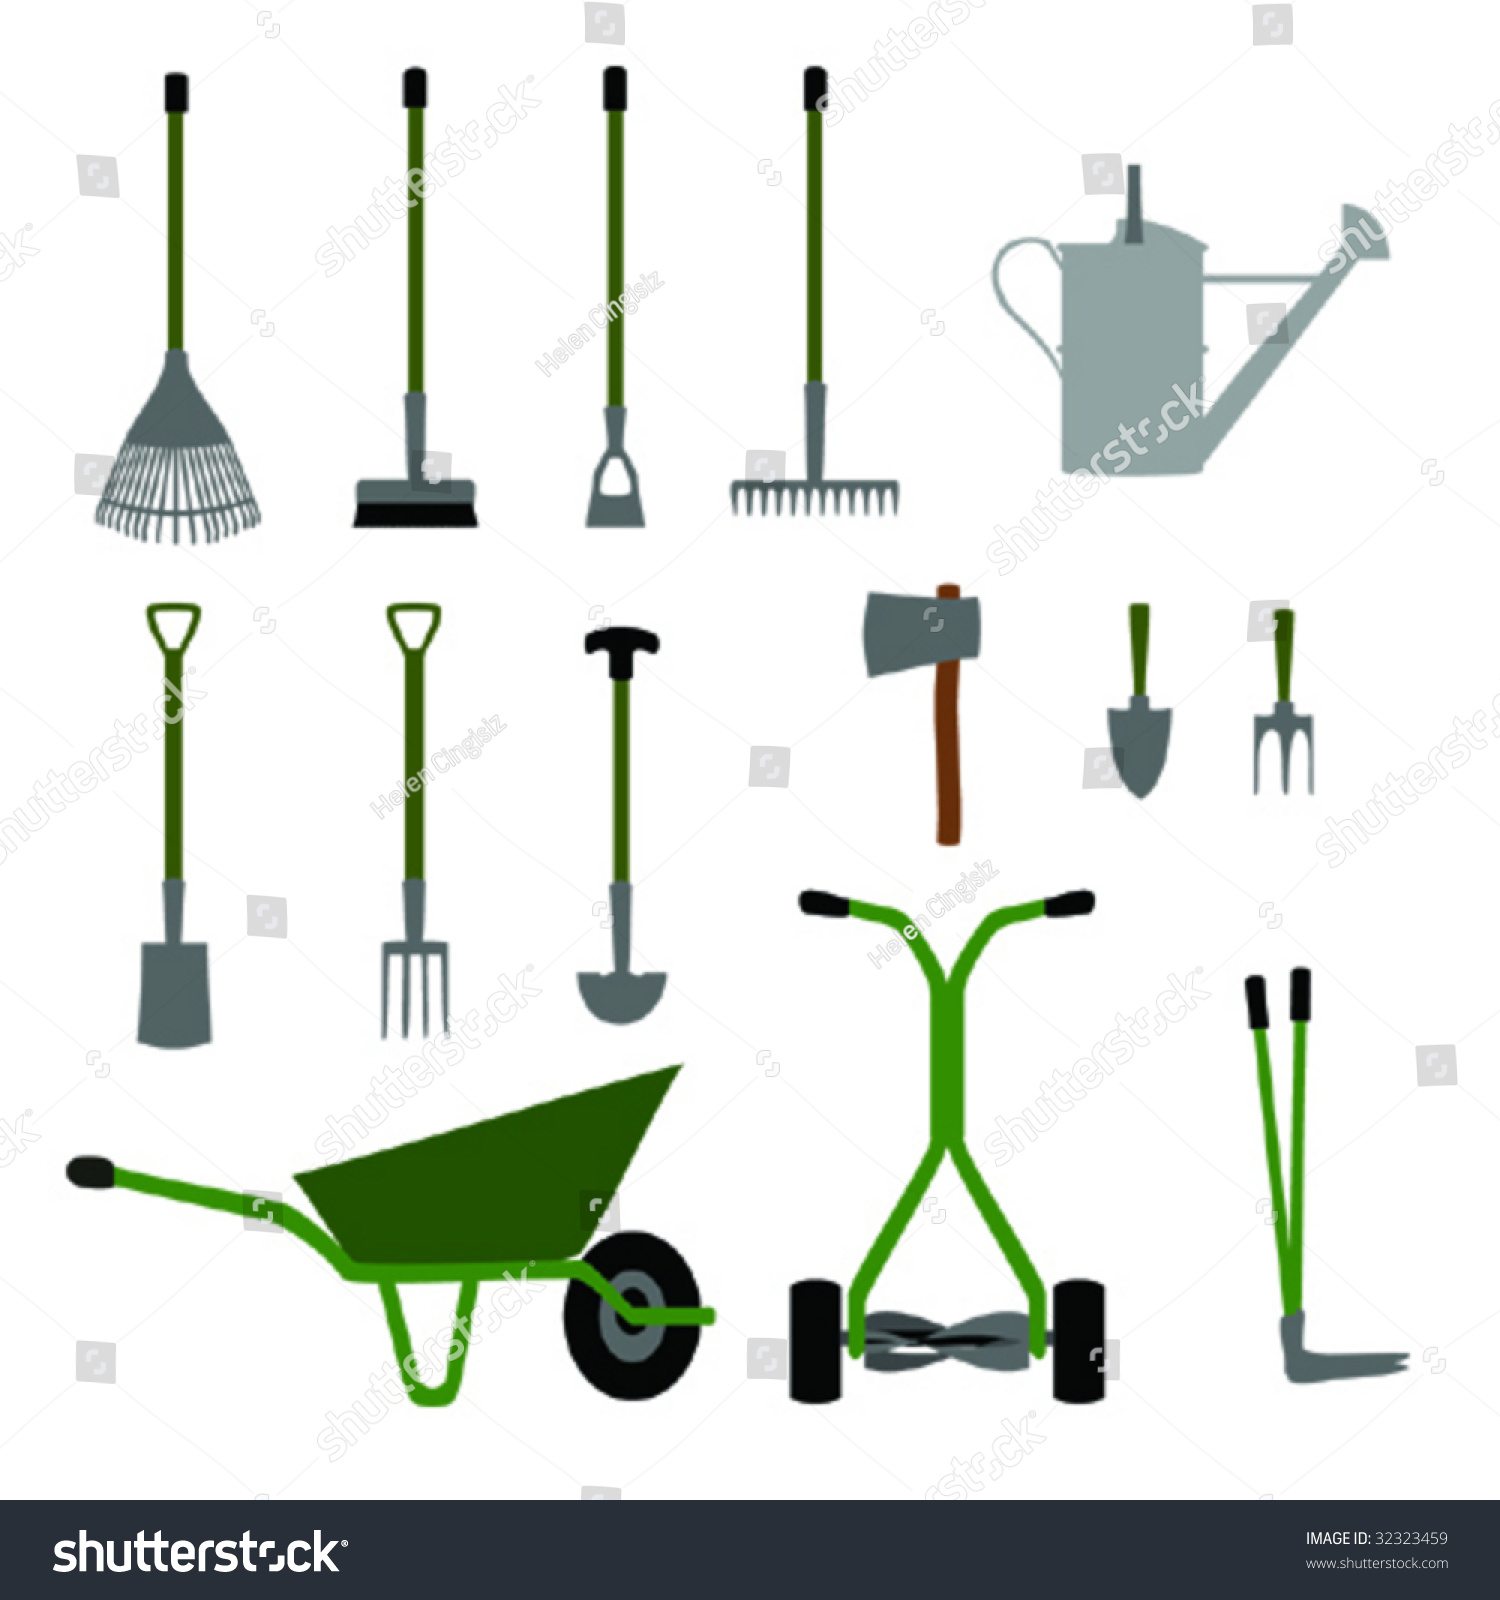 Gardening tools and equipment set no 1 stock vector for Gardening tools list and their uses